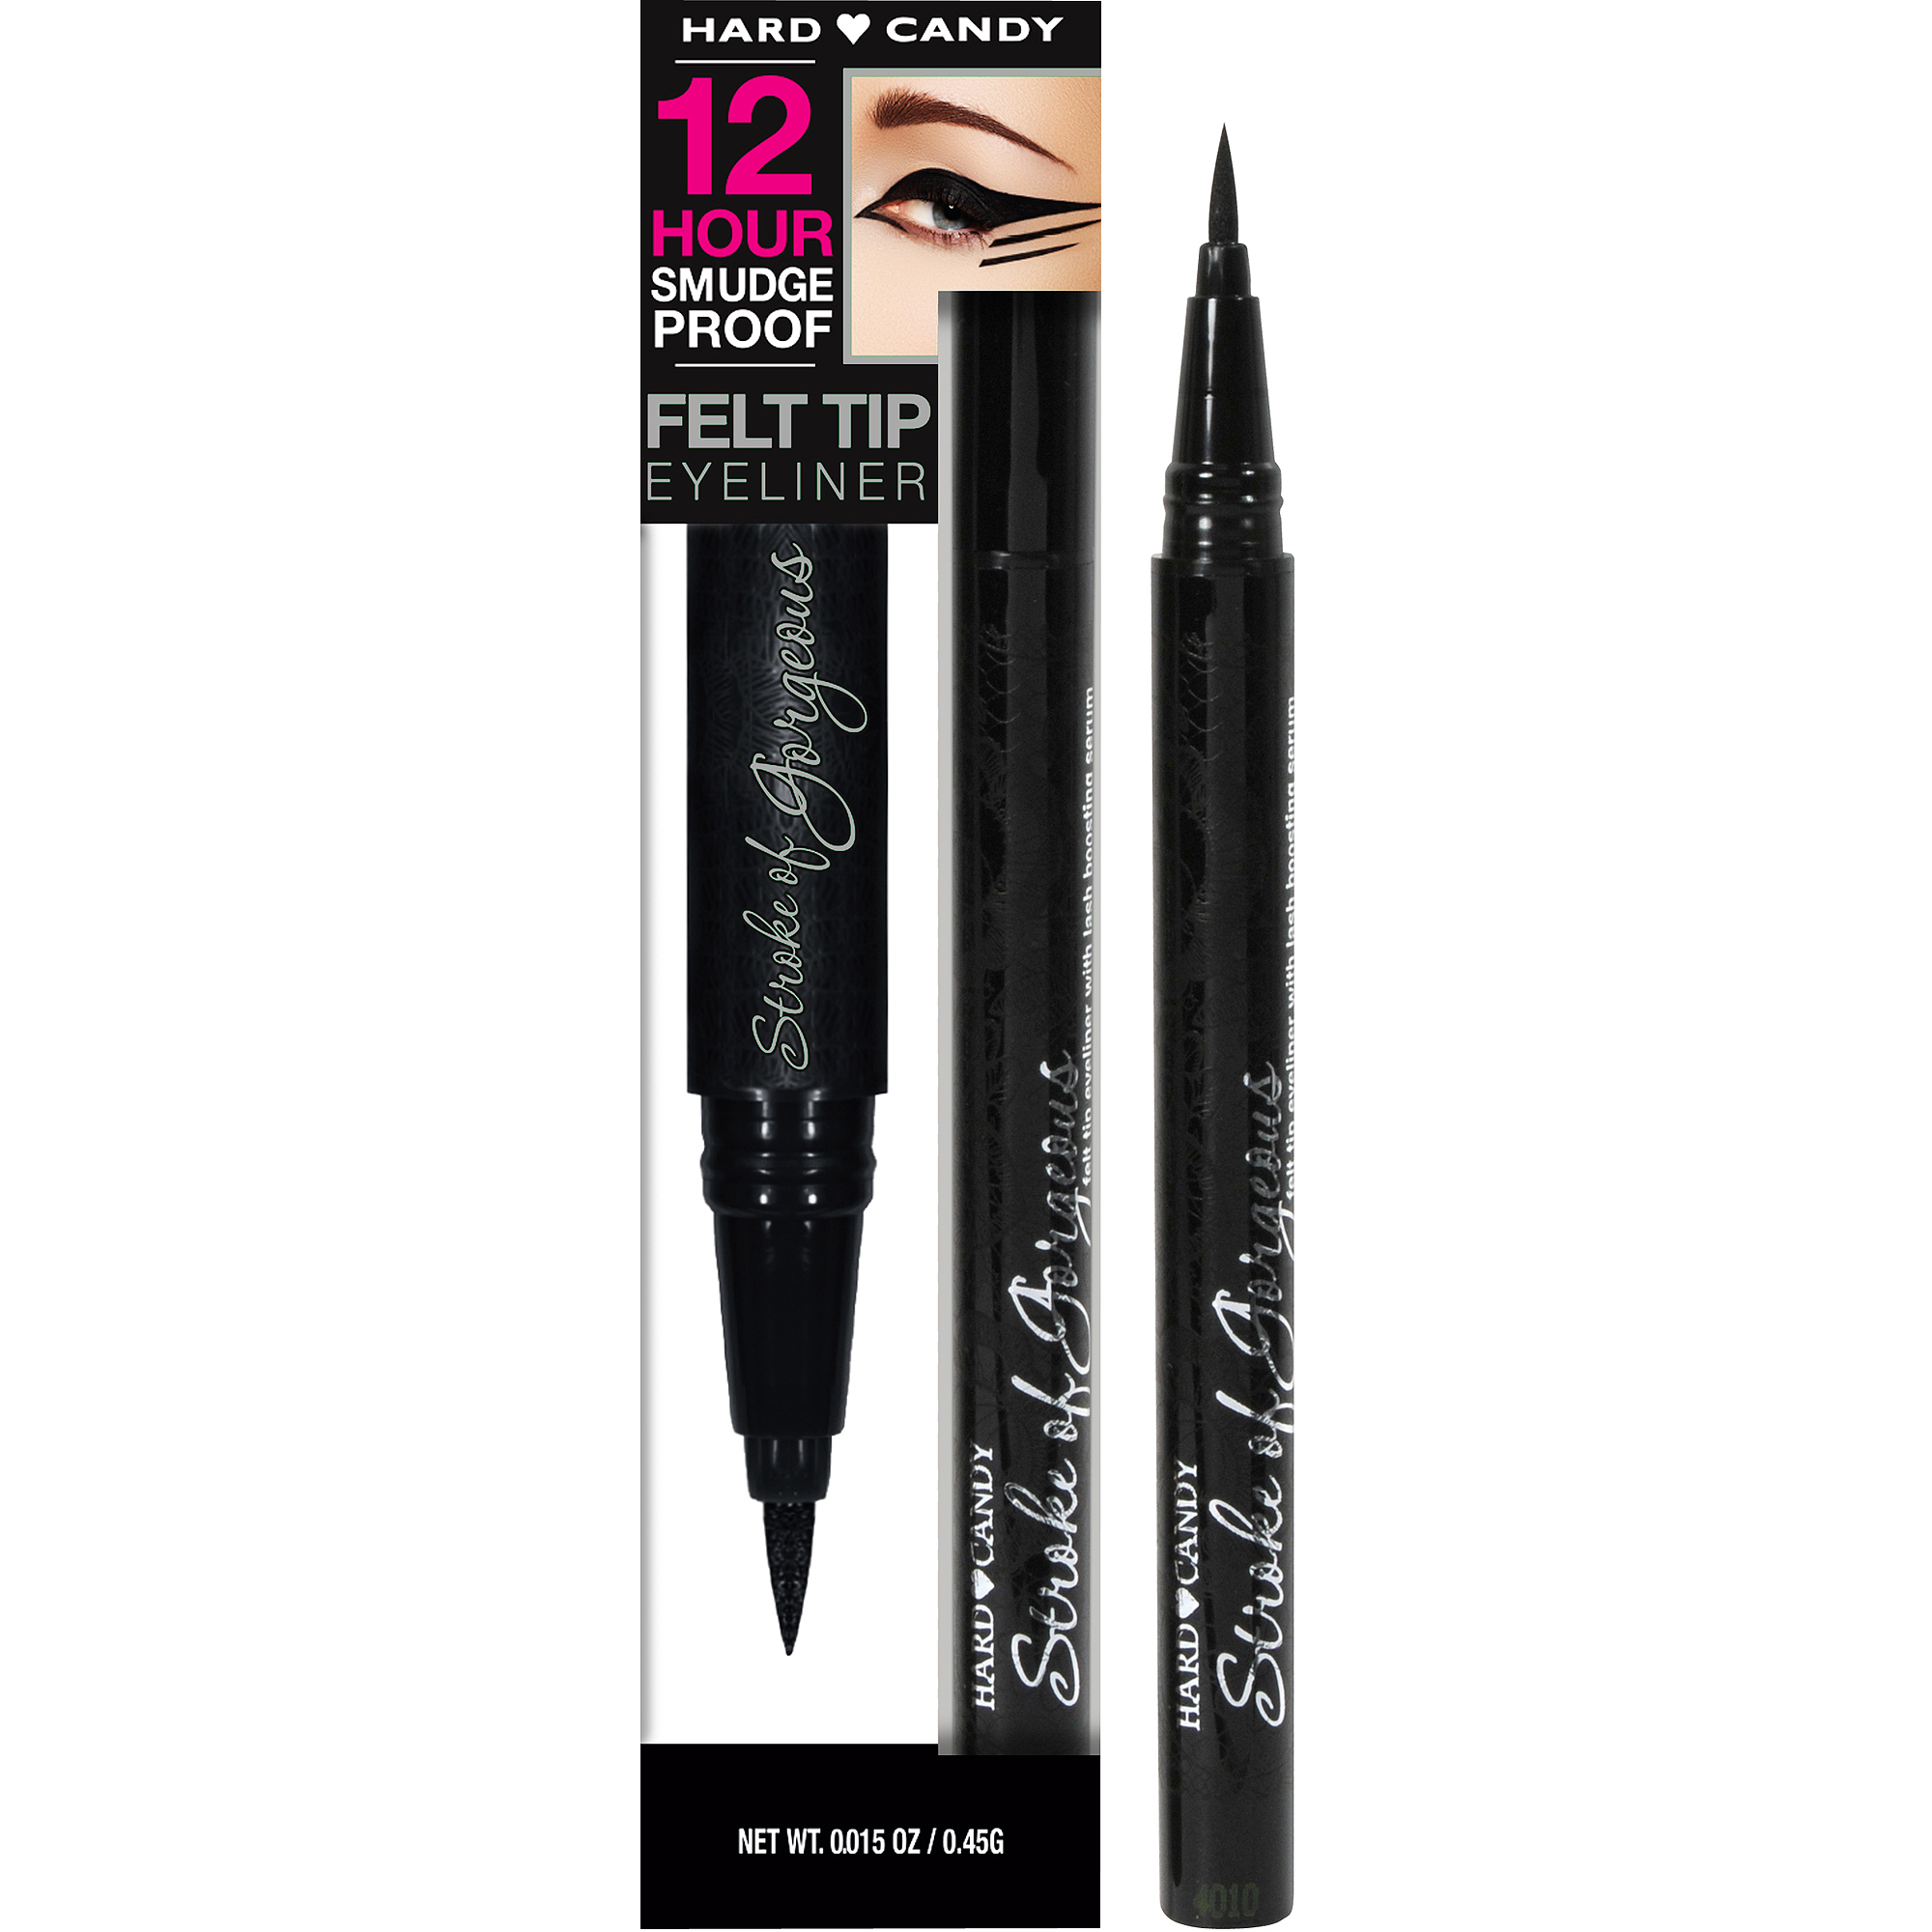 Hard Candy Stroke of Gorgeous Felt Tip Eyeliner, Little Black Dress